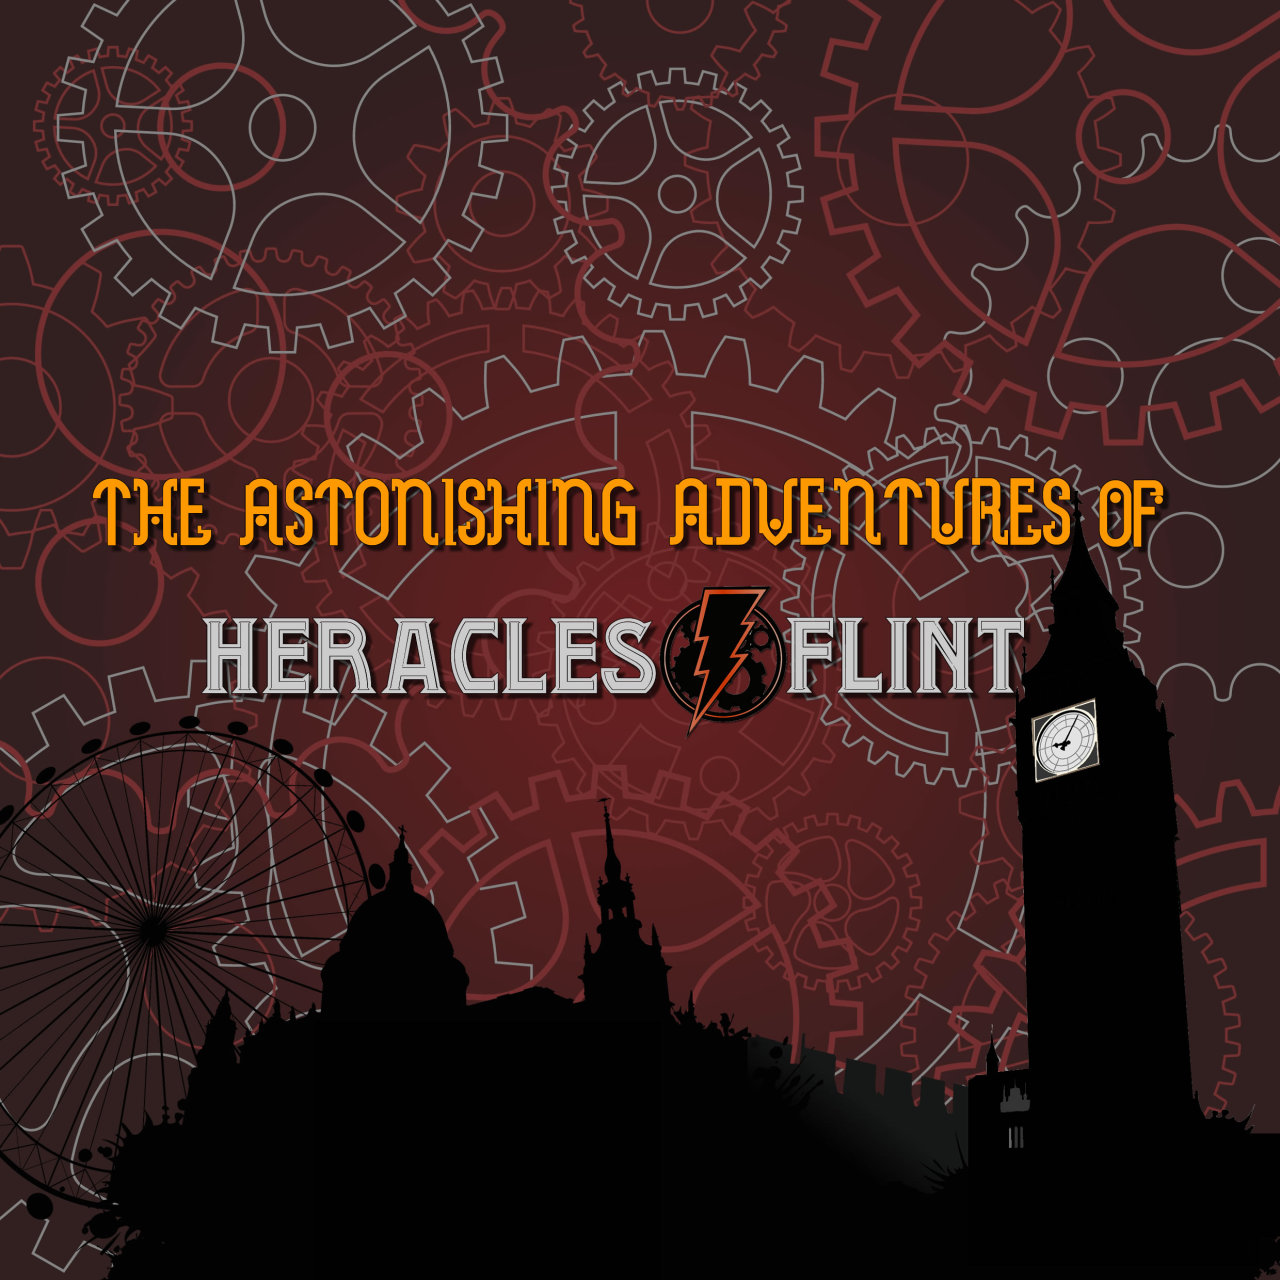 theadventuresofheraclesflint:  Welcome to The Astonishing Adventures of Heracles Flint on TumblrThis is an upcoming novel by Nick Moore featuring just a dash of Steampunk, sci-fi, and horror.In addition to book updates and all manner of Steampunk madness that will be posted here, there's also a wider on-line world for the novel and you'll find Flint on Pinterest, Google+, and Twitter.There's still lots of work to be done but damn it's going to be as fun as possible doing it :-)Visit www.heraclesflint.com to get the heads up on what the book's about, the characters, and Nick's journal on creating the world of Flint and his Victorian knights, the Society of Esoteric Technica.The first book in a planned series is Forever in Shadow The Astonishing Adventures of Heracles Flint – Forever in Shadow tells of the adventures of monster hunter Heracles Flint and his Victorian knights, The Society of Esoteric Technica, who have battled various threats to humanity in the late 19th century. . The Society lead by Flint with his close companions, Diana Von Storm, the bride of Frankenstein's monster, clockwork android Charles Brass, and Alexandria, Queen of the Wolves, fall foul of a plot to destroy them by their arch nemesis Dracula, Lord of the Vampires. . Dracula has seized the time machine of Harold Wells, a descendant of HG Wells who had travelled back several times to visit his famous relative, and has constructed a portal to the present day were he seeks to rule all, free of the constant pursuit by the Society who have thwarted his efforts for years. . In a pitched battle both he and Flint fall through time and Flint's friends are lost presumed dead. . In the present day Flint finds a much changed, much harsher, world than the future he'd hoped would evolve from his time, and gathering what resources he can, makes plans to stop Dracula once and for all. …..Let the chaos begin :-)